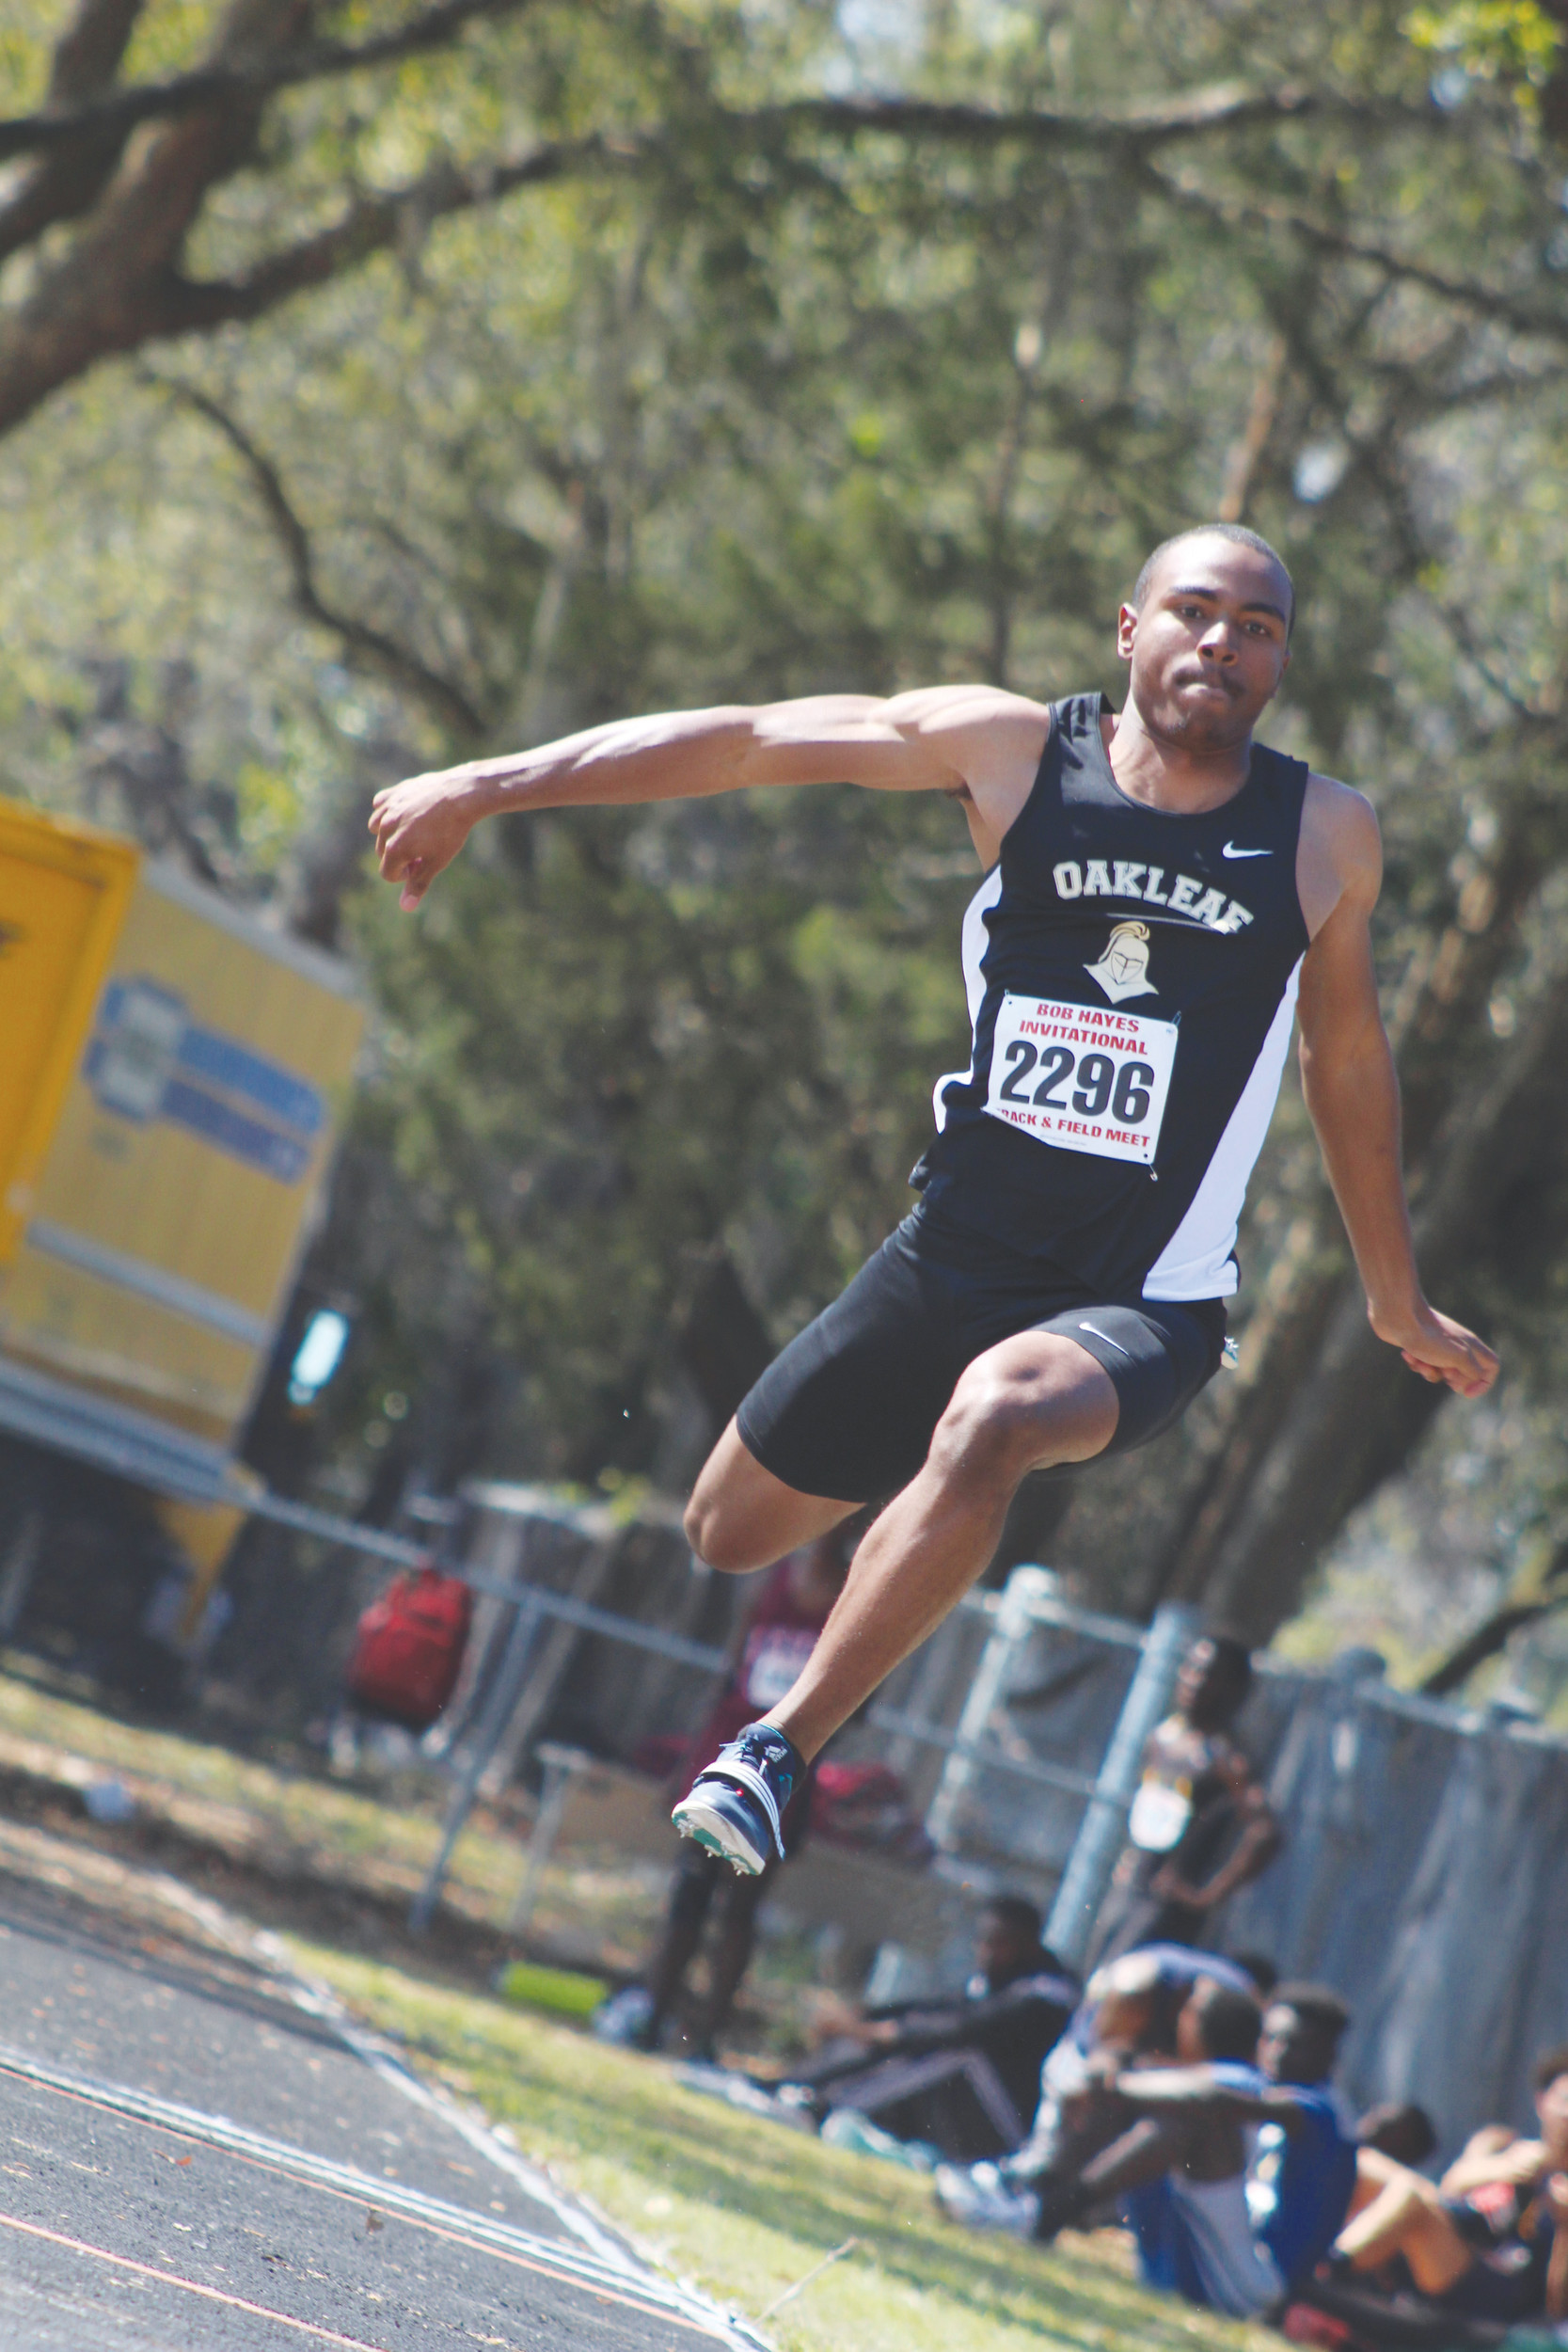 Oakleaf High junior Melvin Briley was lone gold medalist from track state championships.